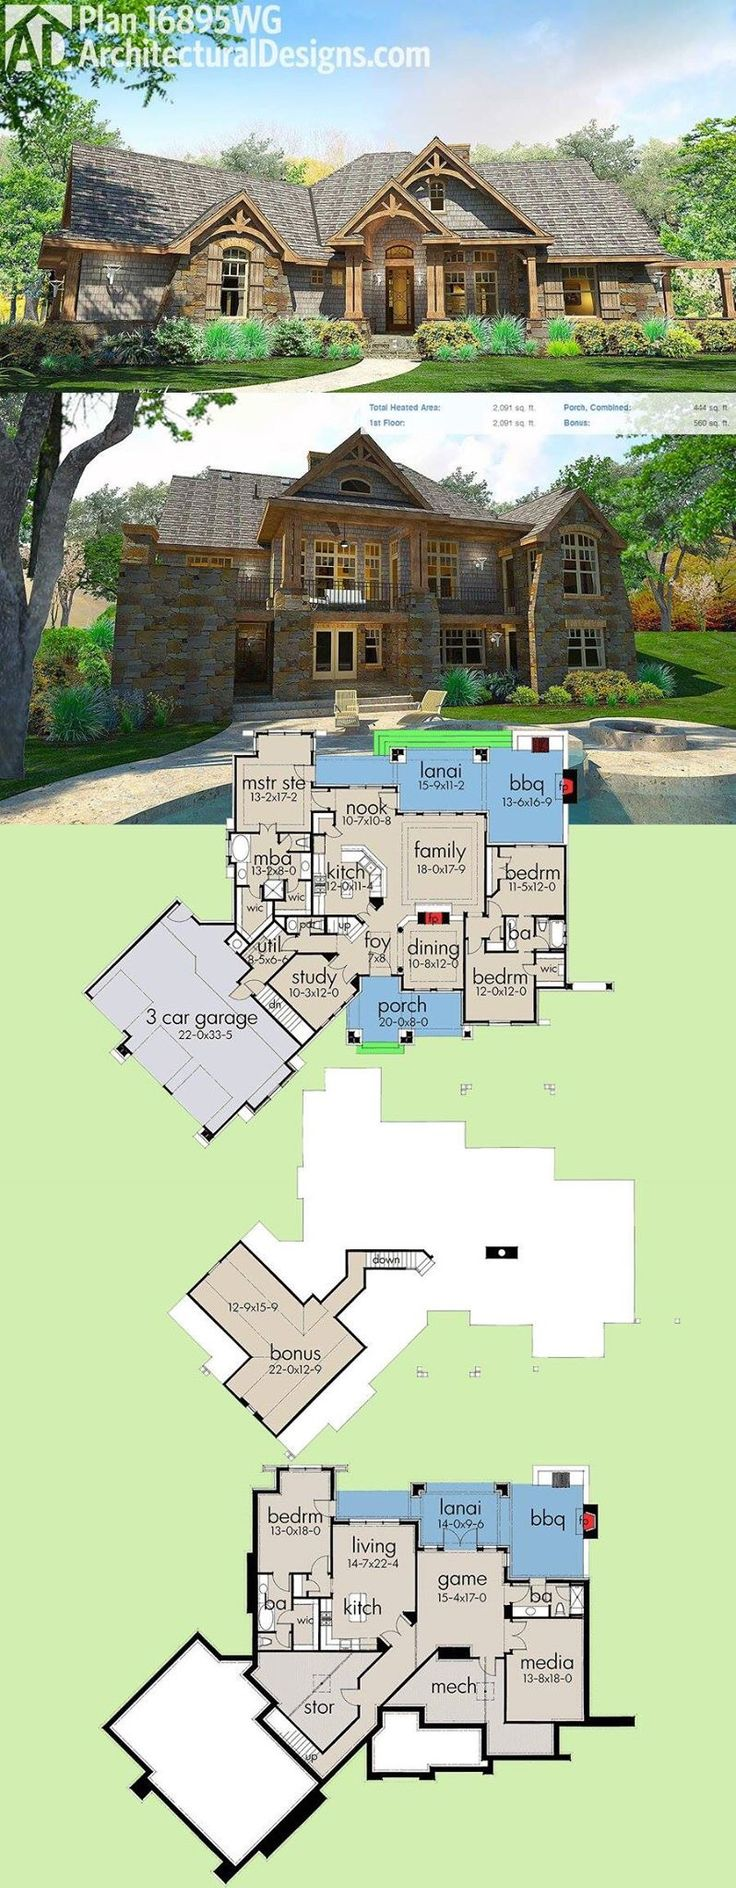 best 25 3 car garage ideas on pinterest 3 car garage plans architectural designs house plan 16895wg rocking craftsman with 3 car garage and expansion up